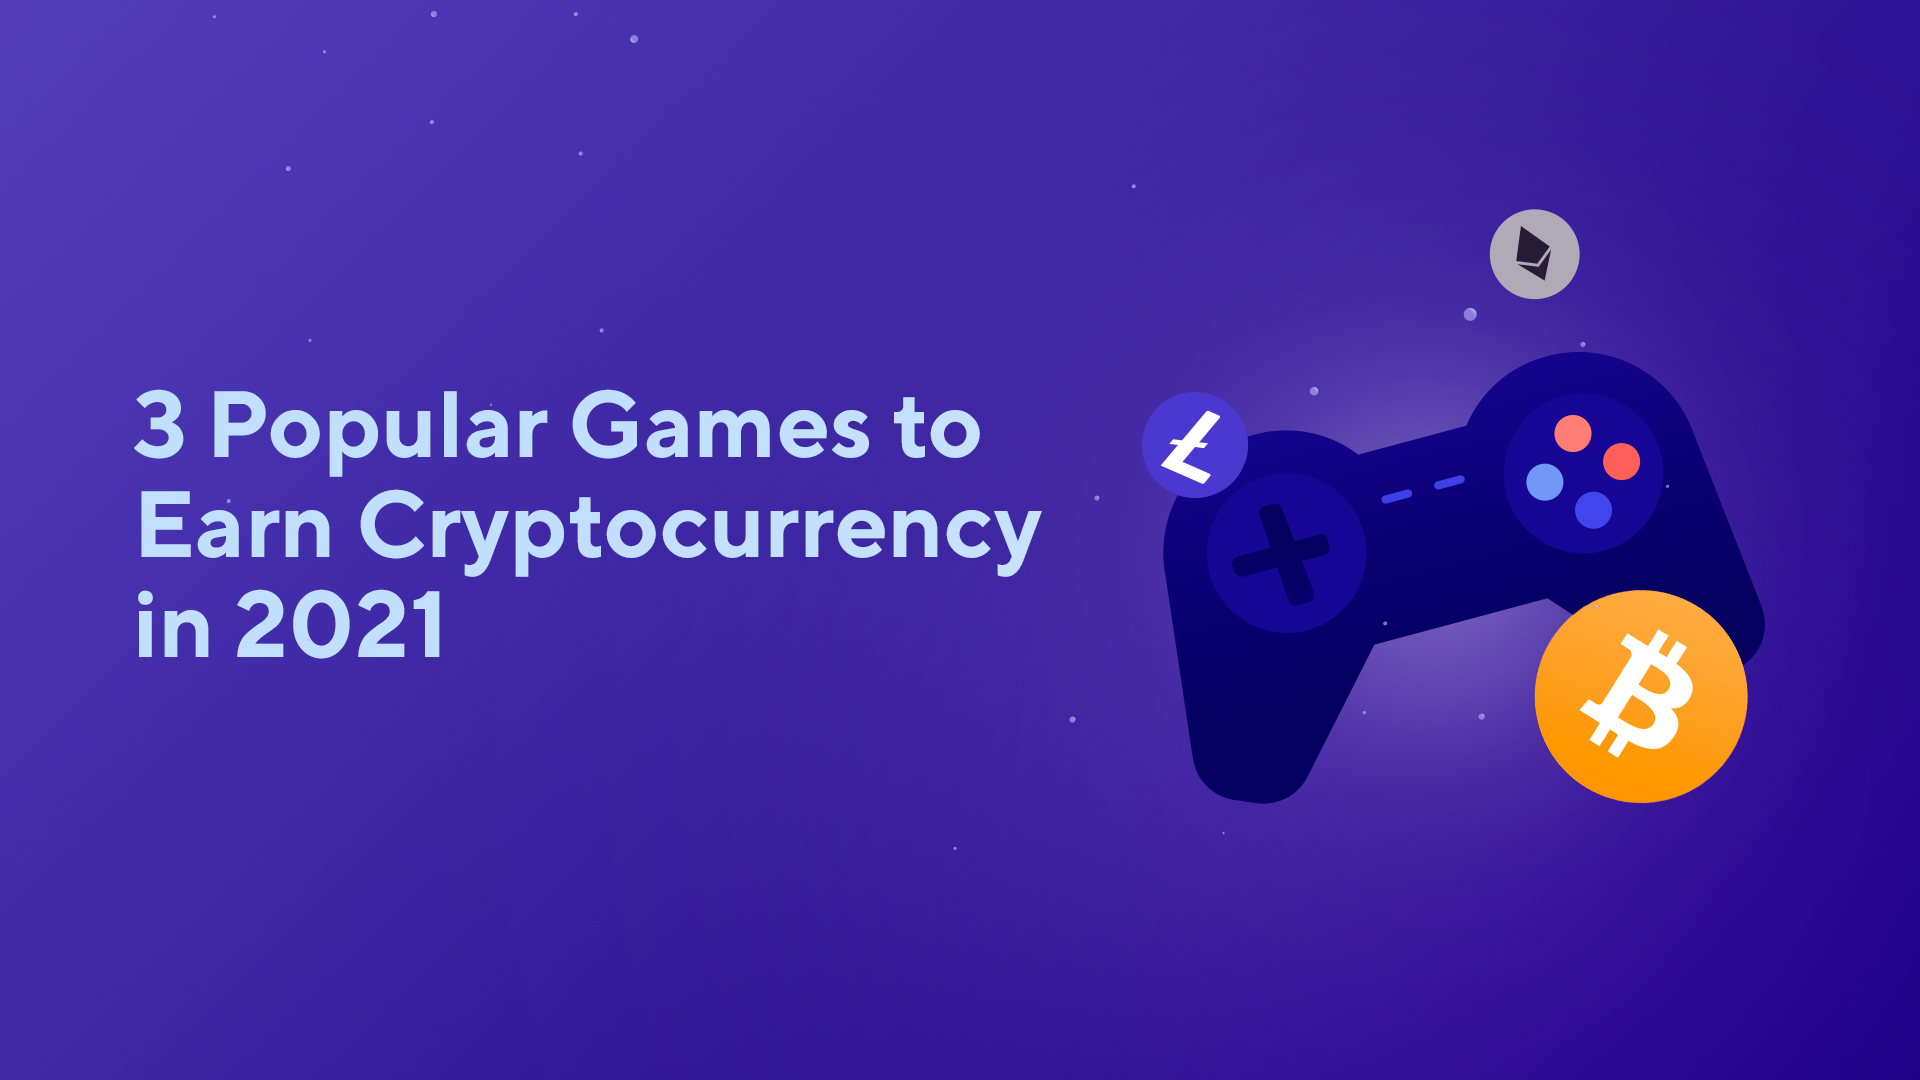 3 Popular Games to Earn Cryptocurrency in 2021